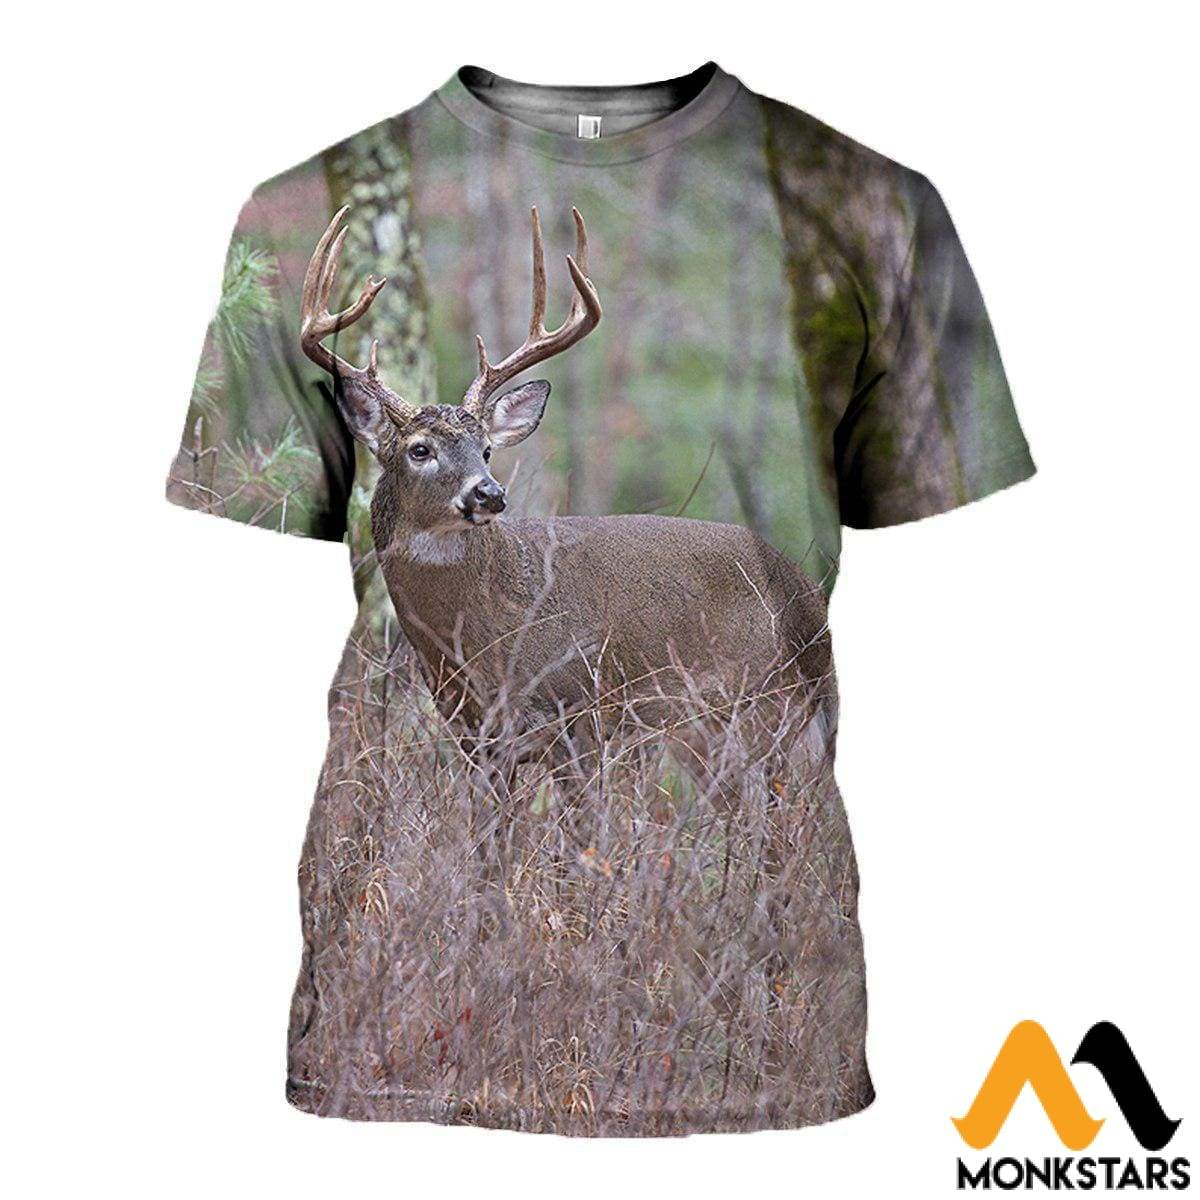 3D All Over Printed Deer Clothes T-Shirt / Xs